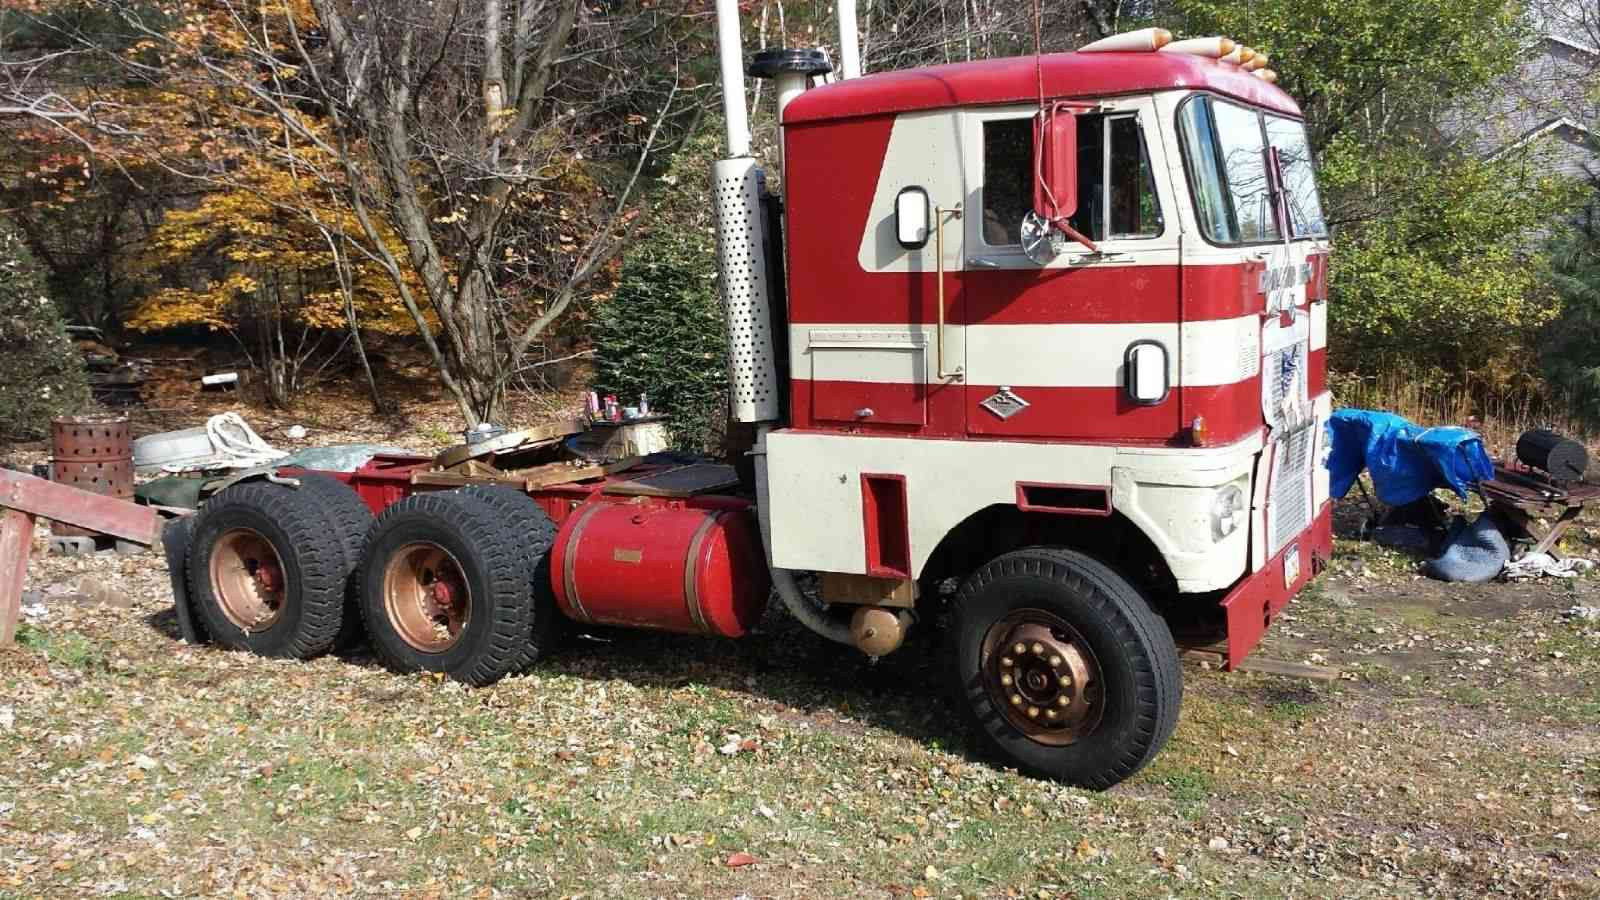 BangShift.com 1971 Diamond REO truck for sale with 318hp Detroit Diesel